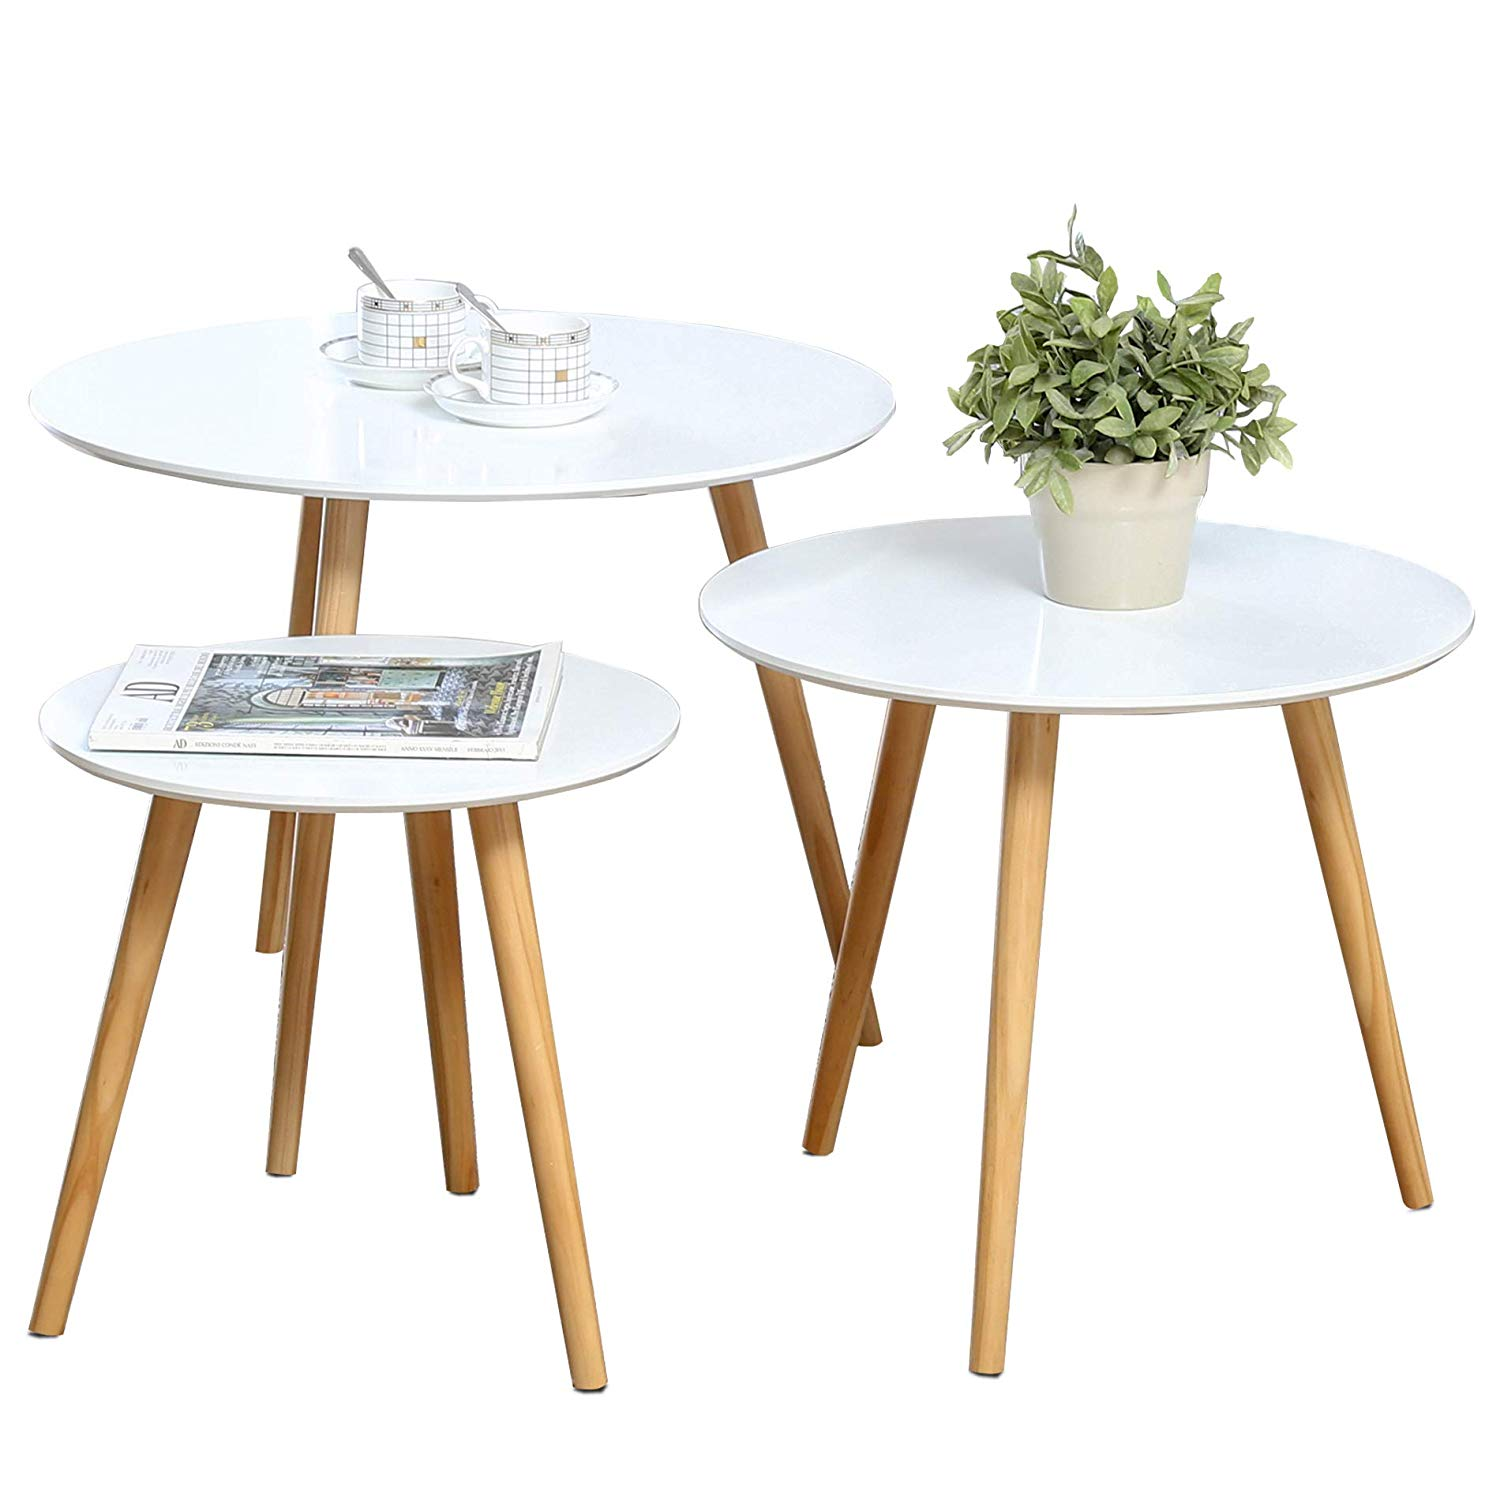 dinette and garden glass table round metal card tapered legs lamp inch base toppers wooden black dining pub pedestal small depot home chairs men white scre replacement top